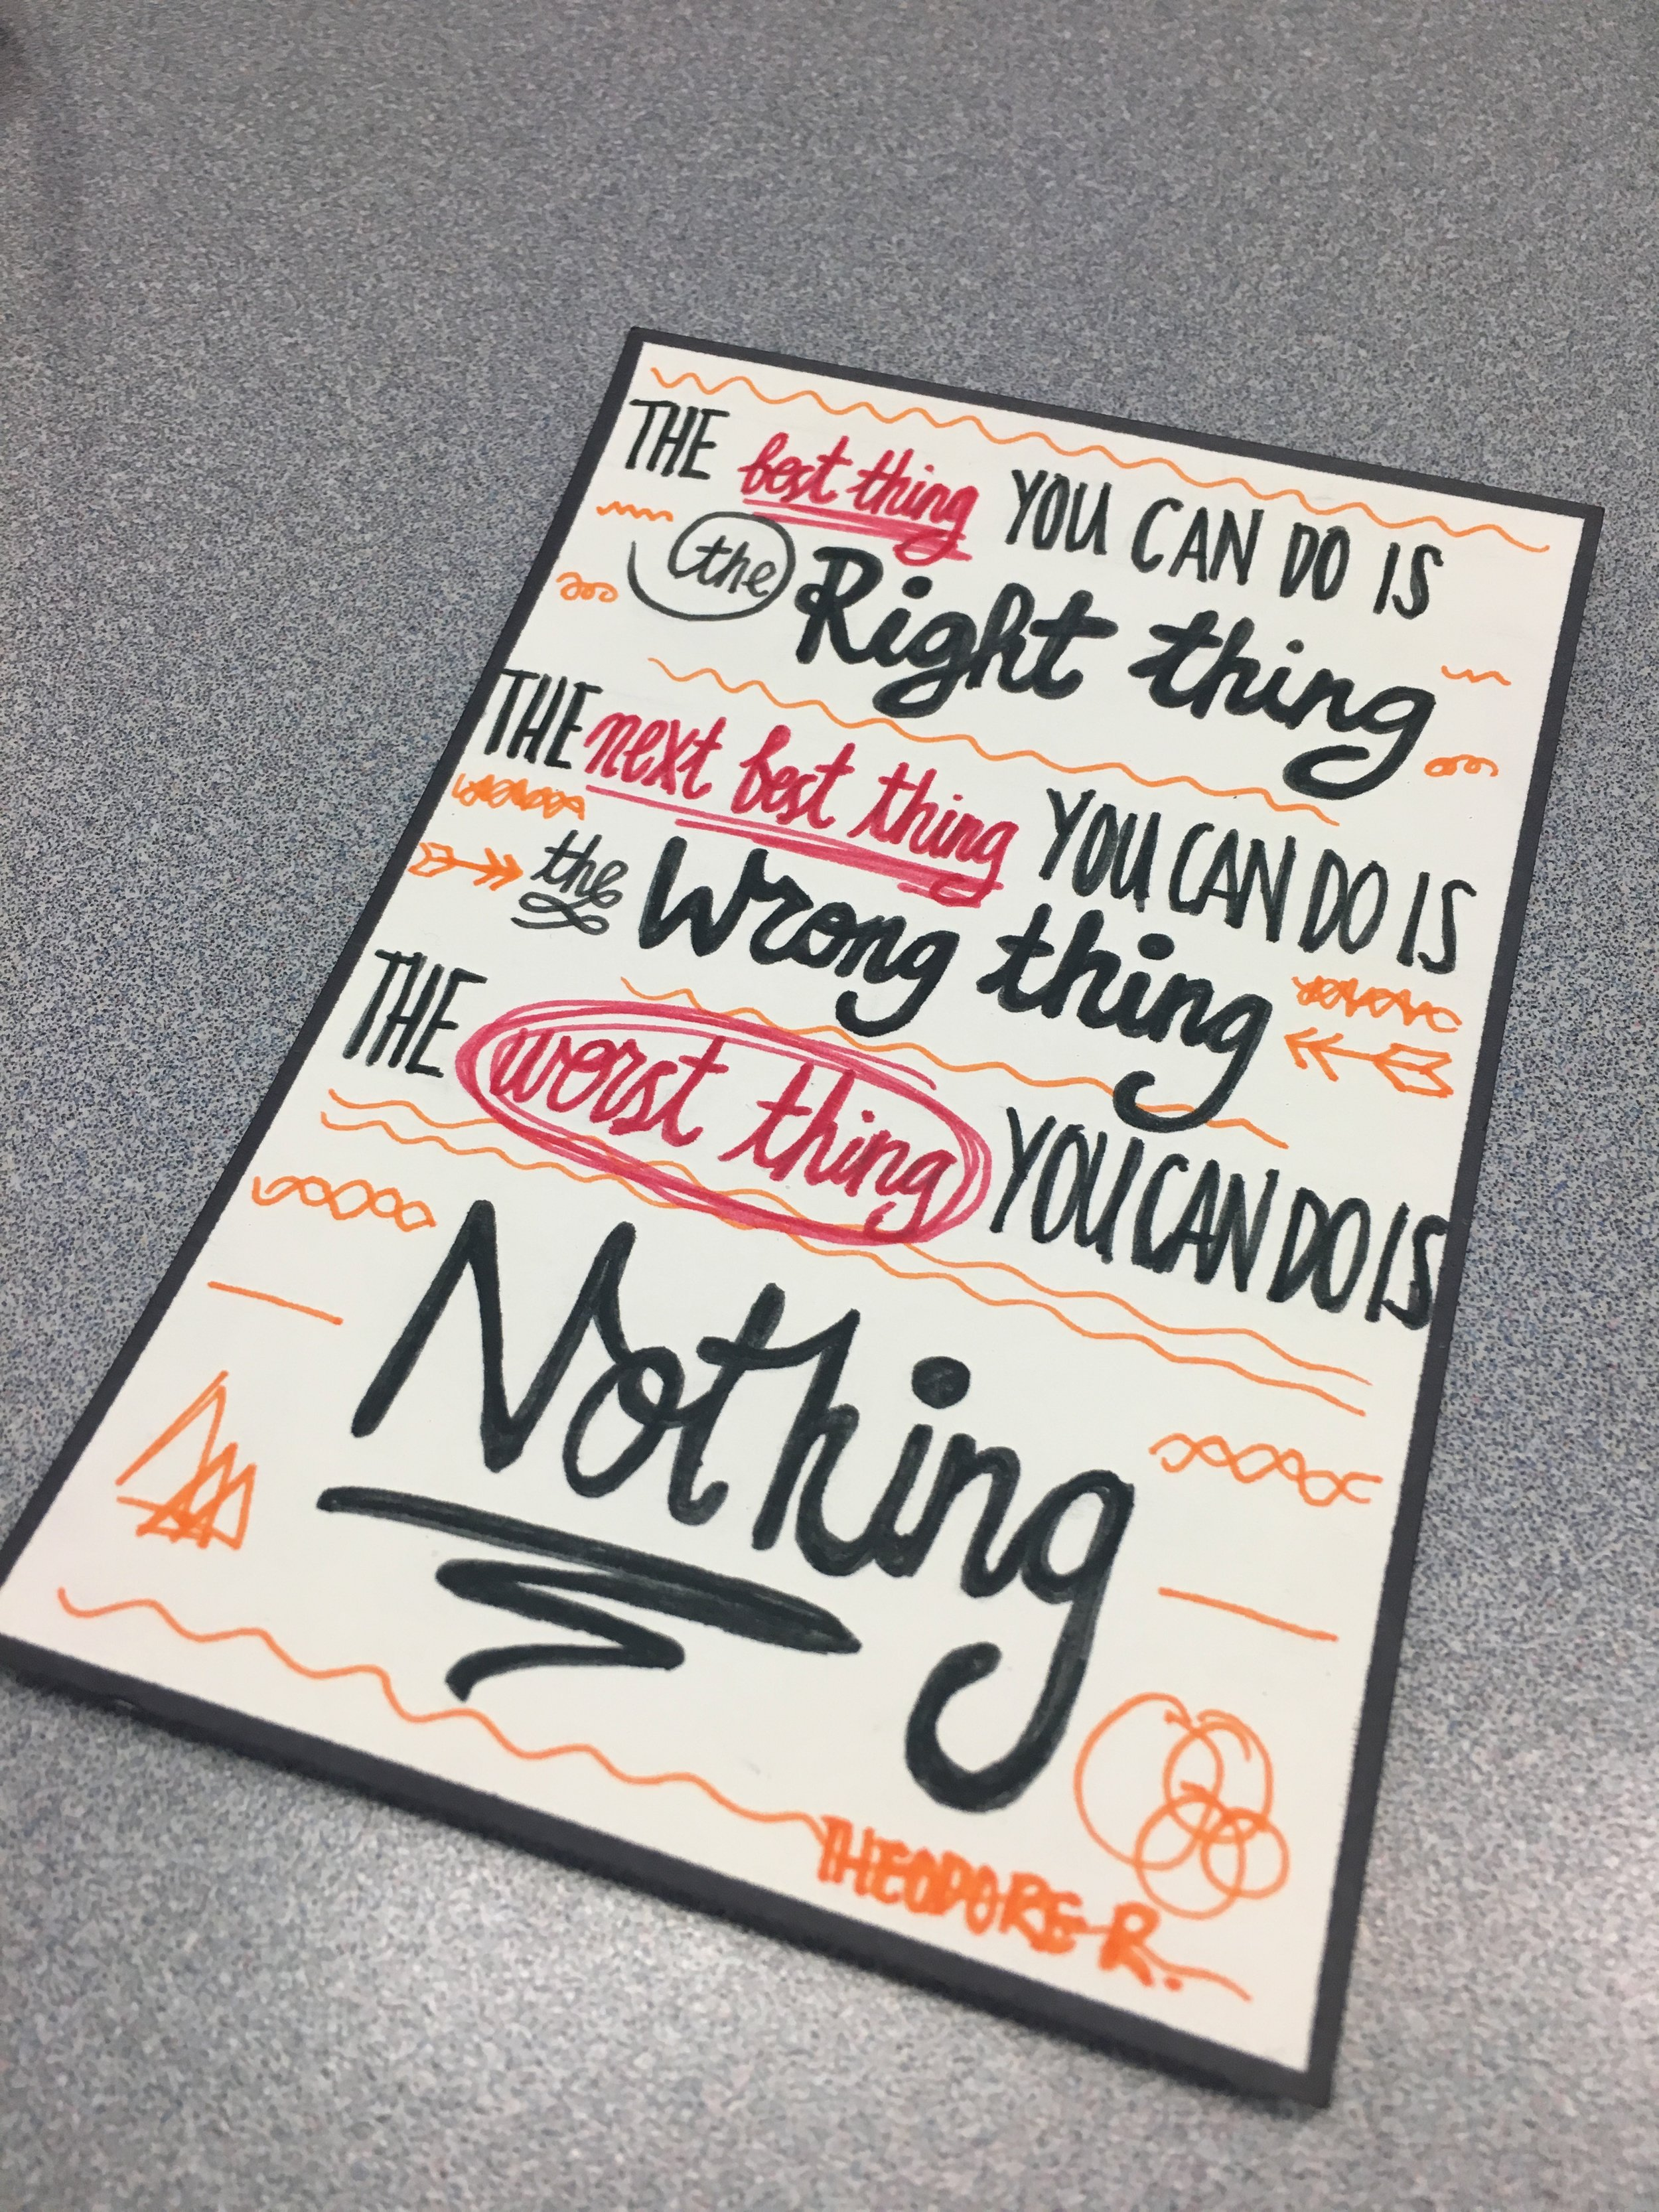 "April 7 - ""The best thing you can do is the right thing, the next best thing you can do is the wrong thing, the worst thing you can is nothing"""